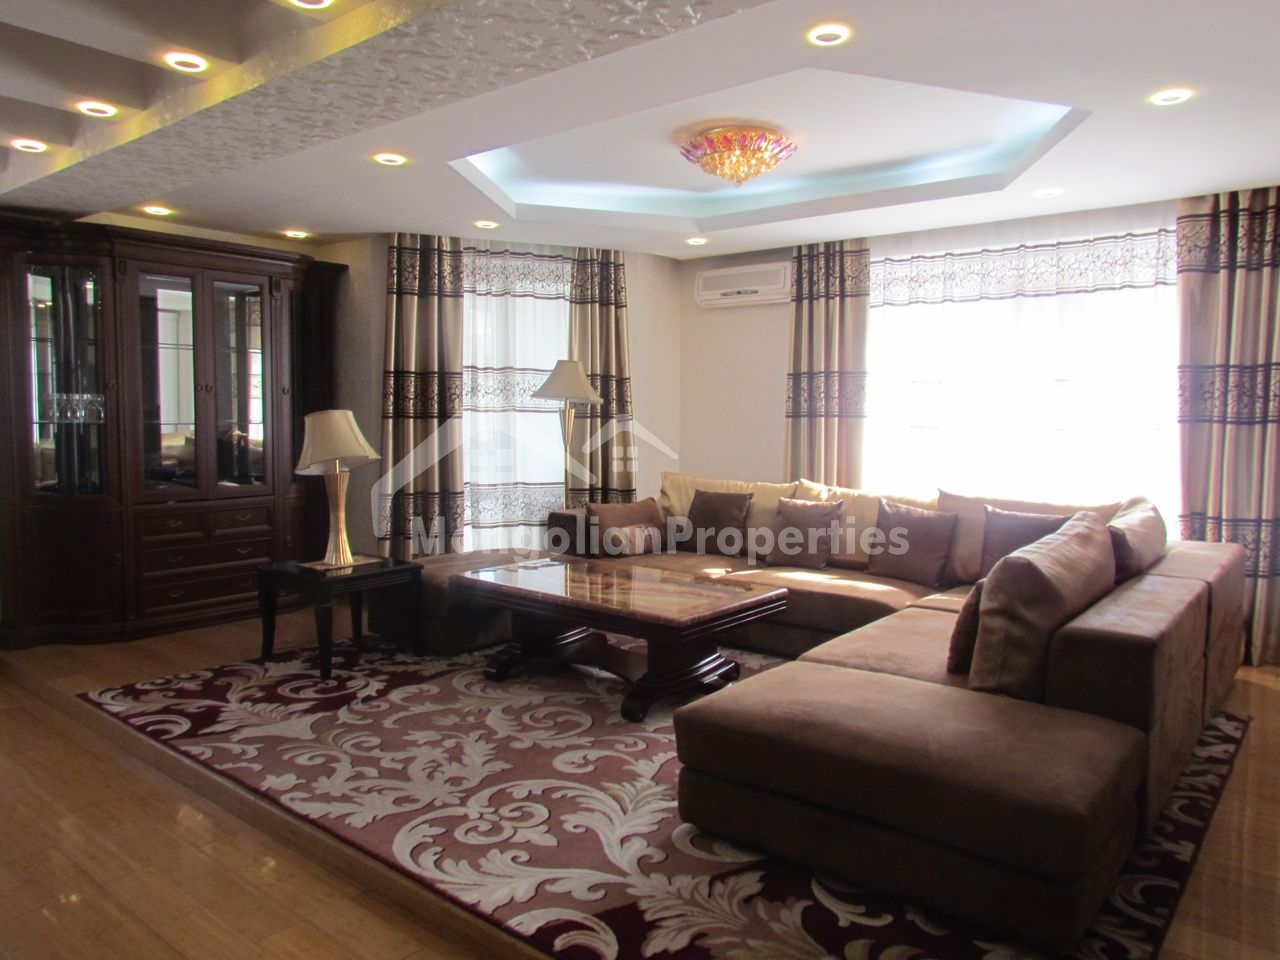 Spacious 3 bedroom apartment is for rent near Shangri -La hotel